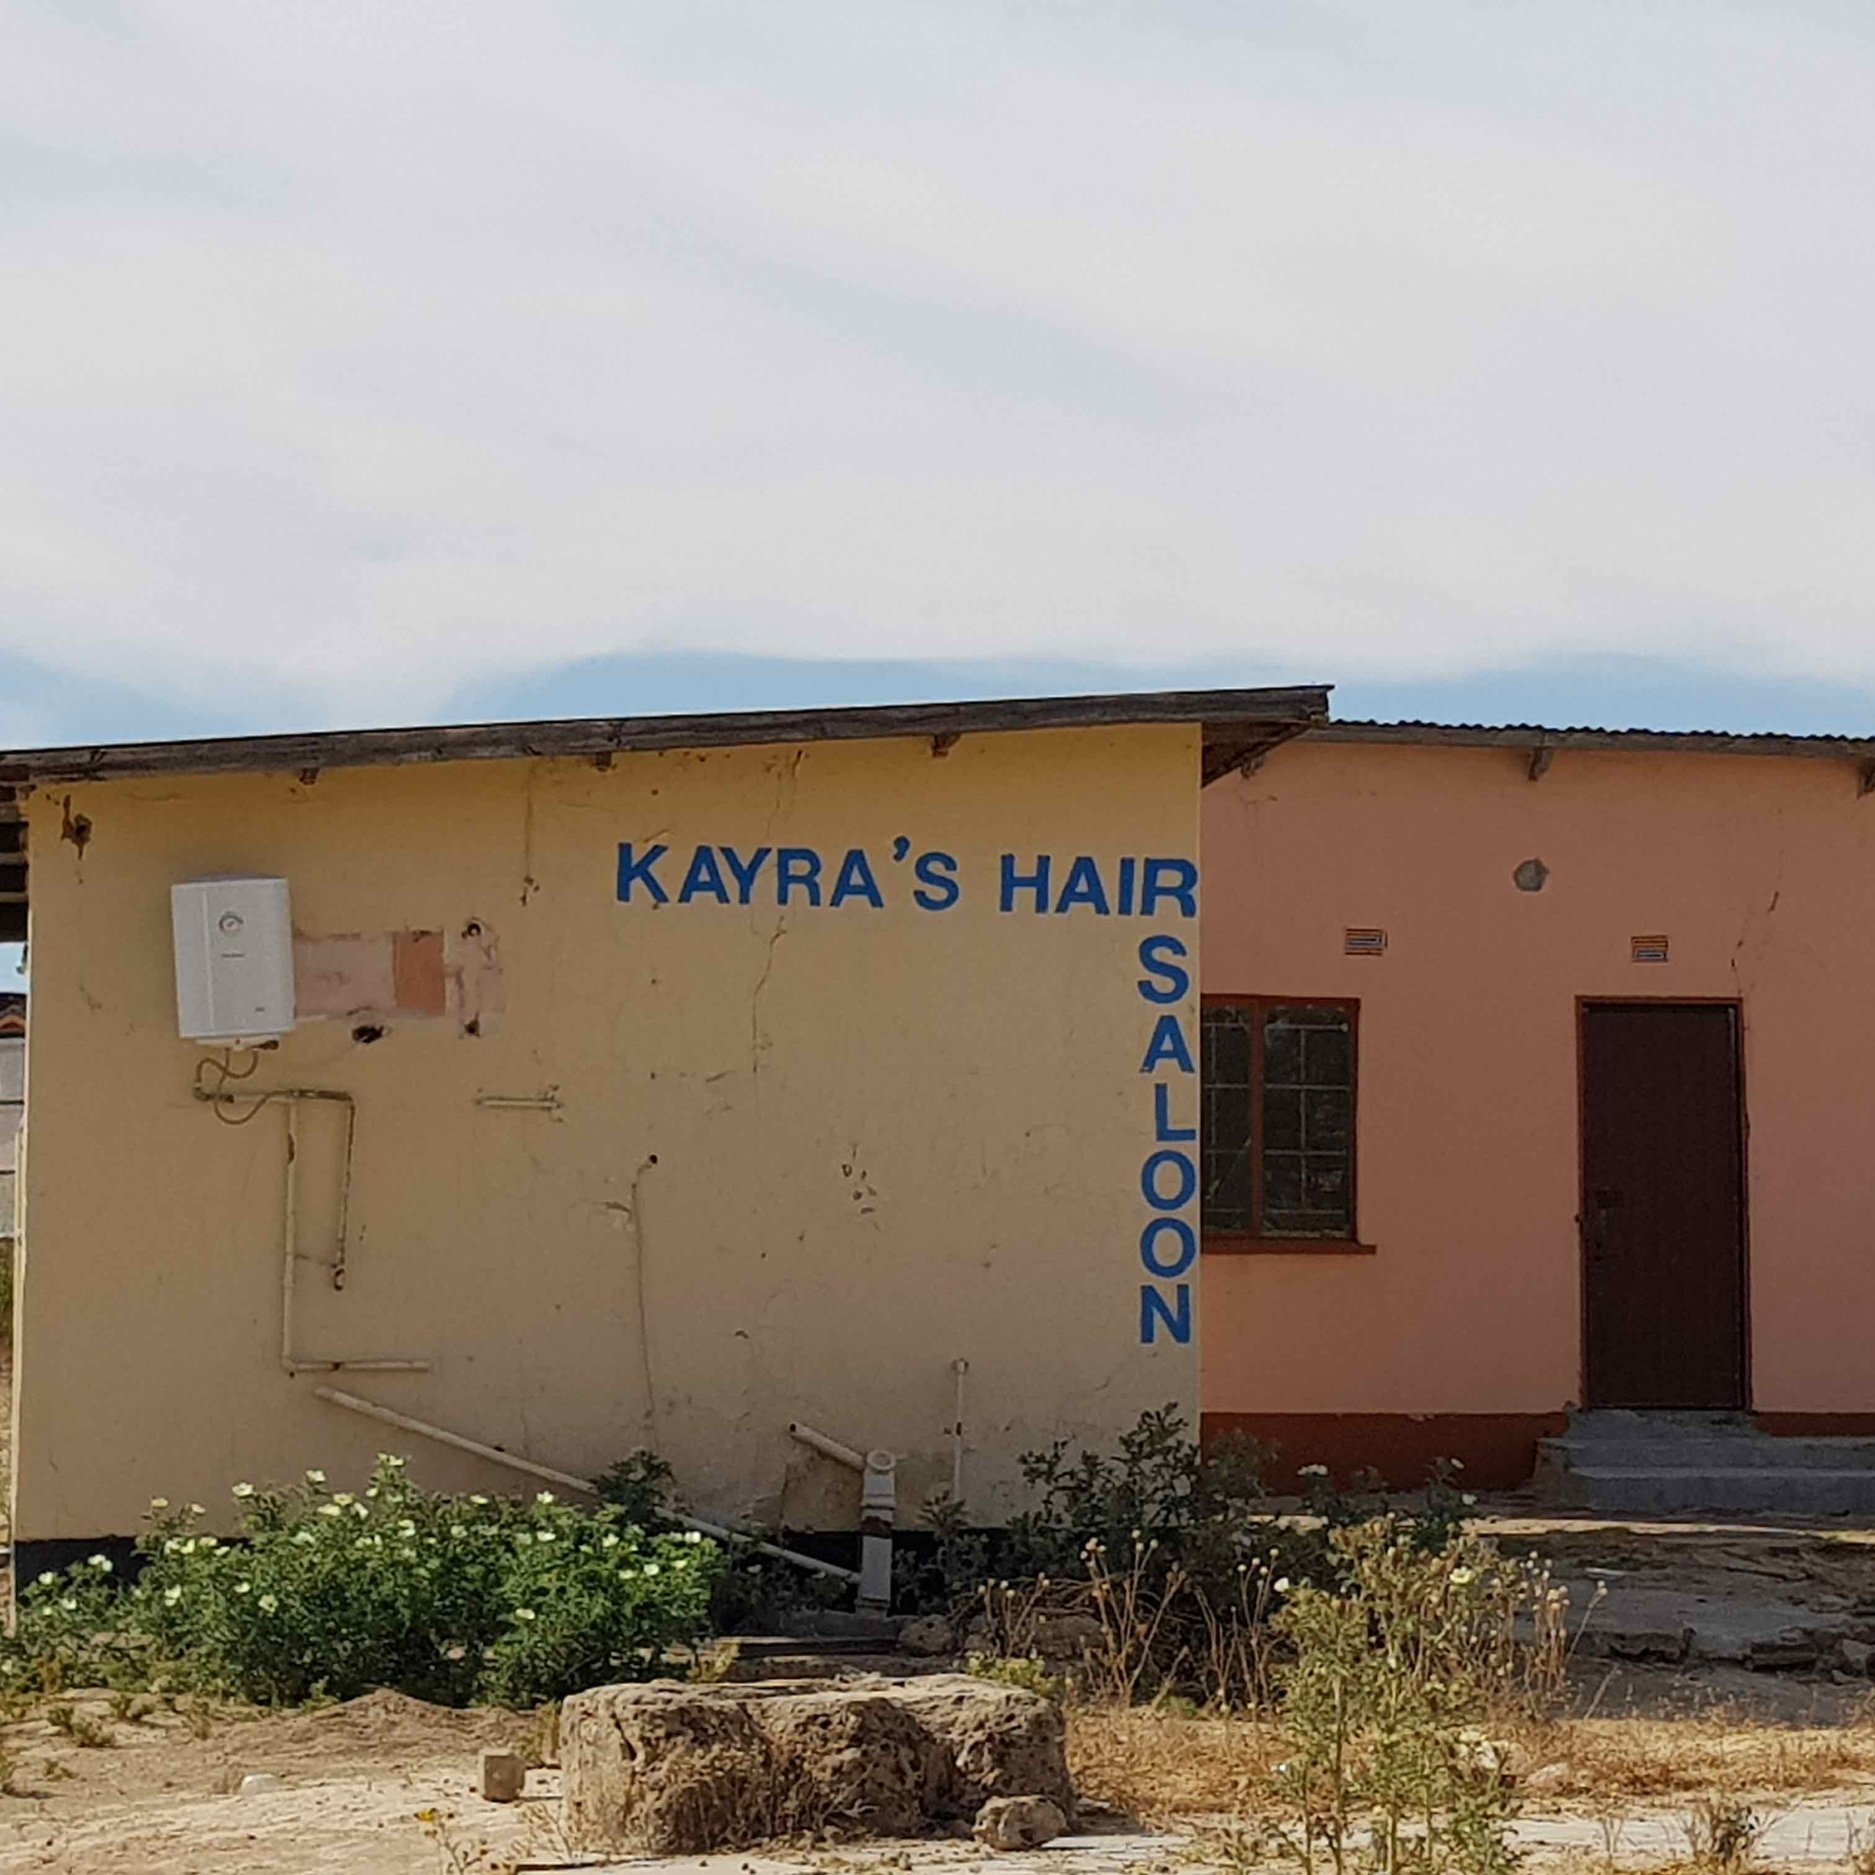 Kayra´s Hair Saloon - Service Description∙ Opening Hours:Monday - Friday: Saturday: Sunday:Directions:WardContact:📞 (+267) 7x xx xx xx✎ @